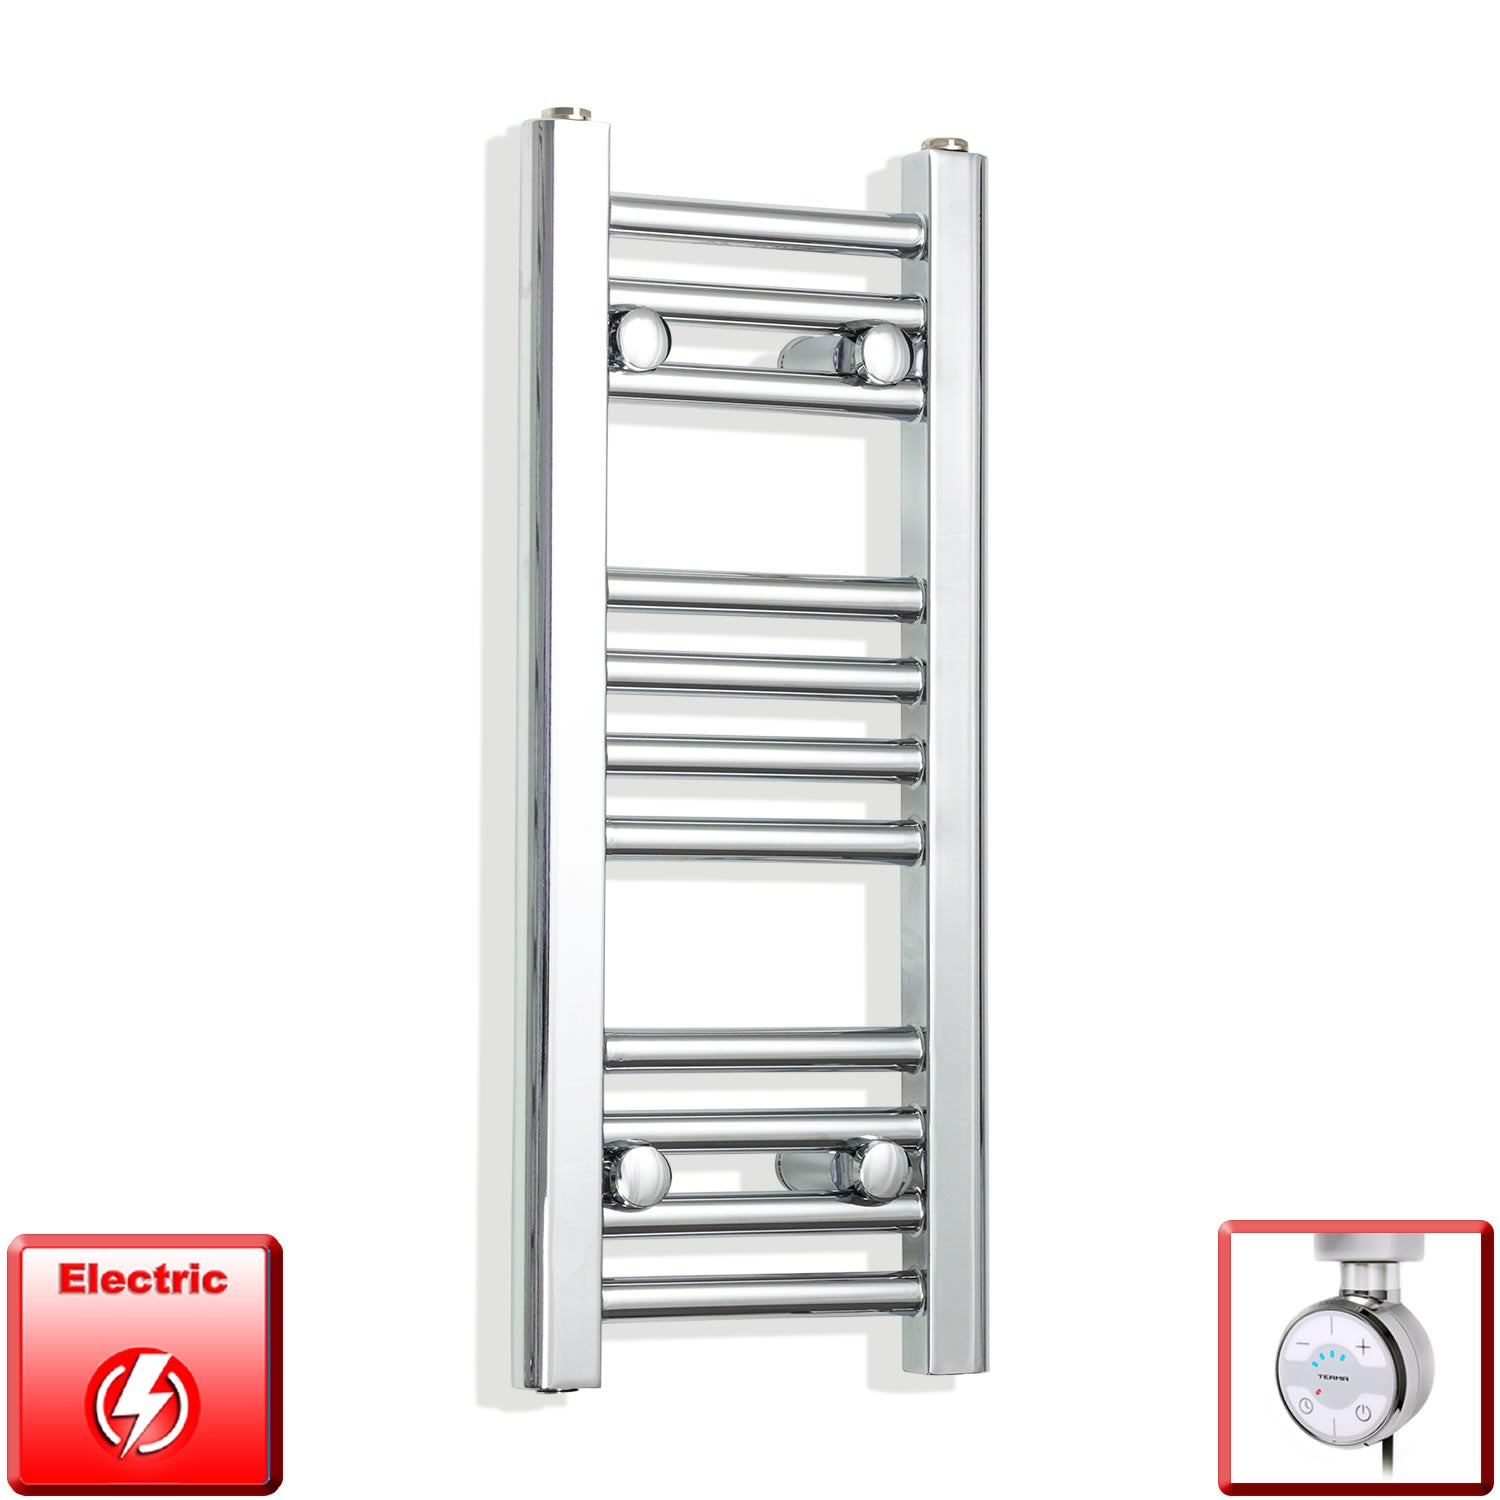 200mm Wide 600mm High Pre-Filled Chrome Electric Towel Rail Radiator With Thermostatic MOA Element